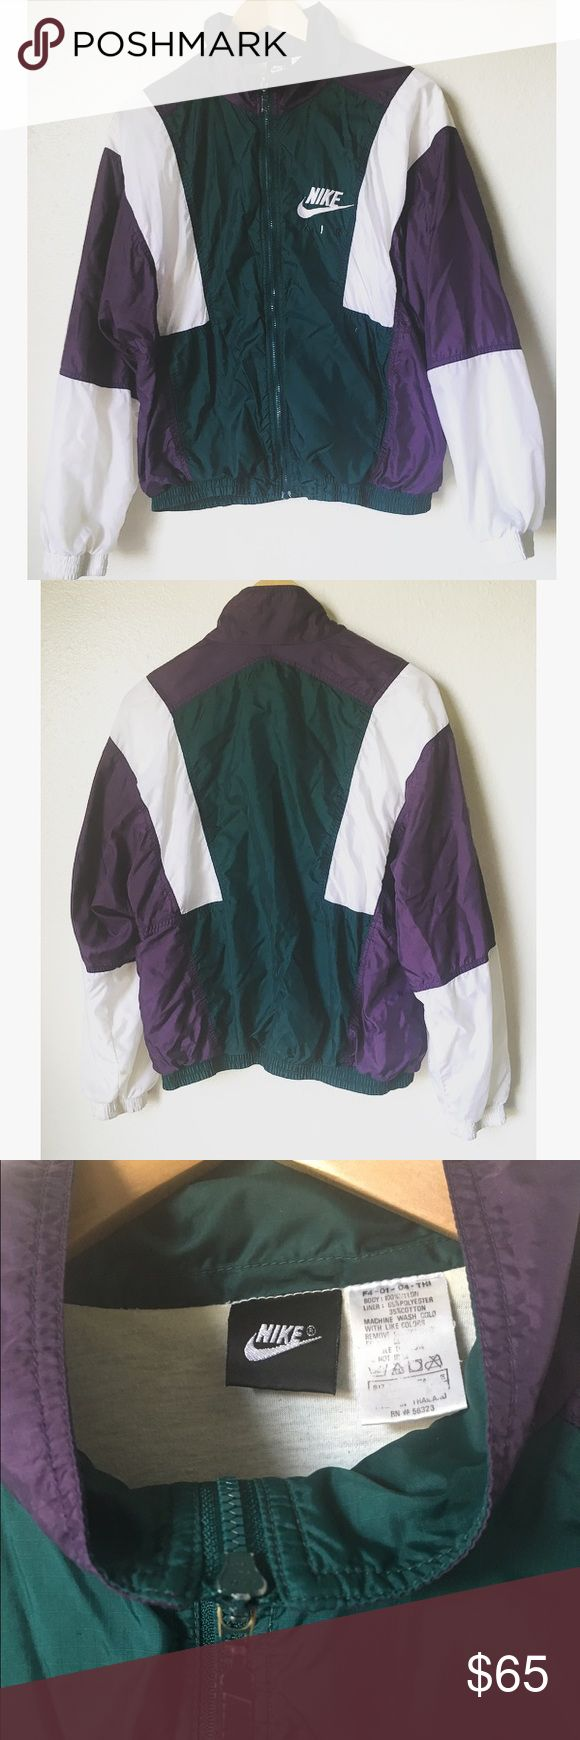 Vintage Nike Zip Up Windbreaker Vintage Nike wind jacket zip up. Colorful and retro! Fits like a medium. Note this is a vintage item and there is some discoloration on the inner and bottoms of the white sleeves. 90s/80s colorblock style. Green white and purple... it's amazing! Nike Jackets & Coats